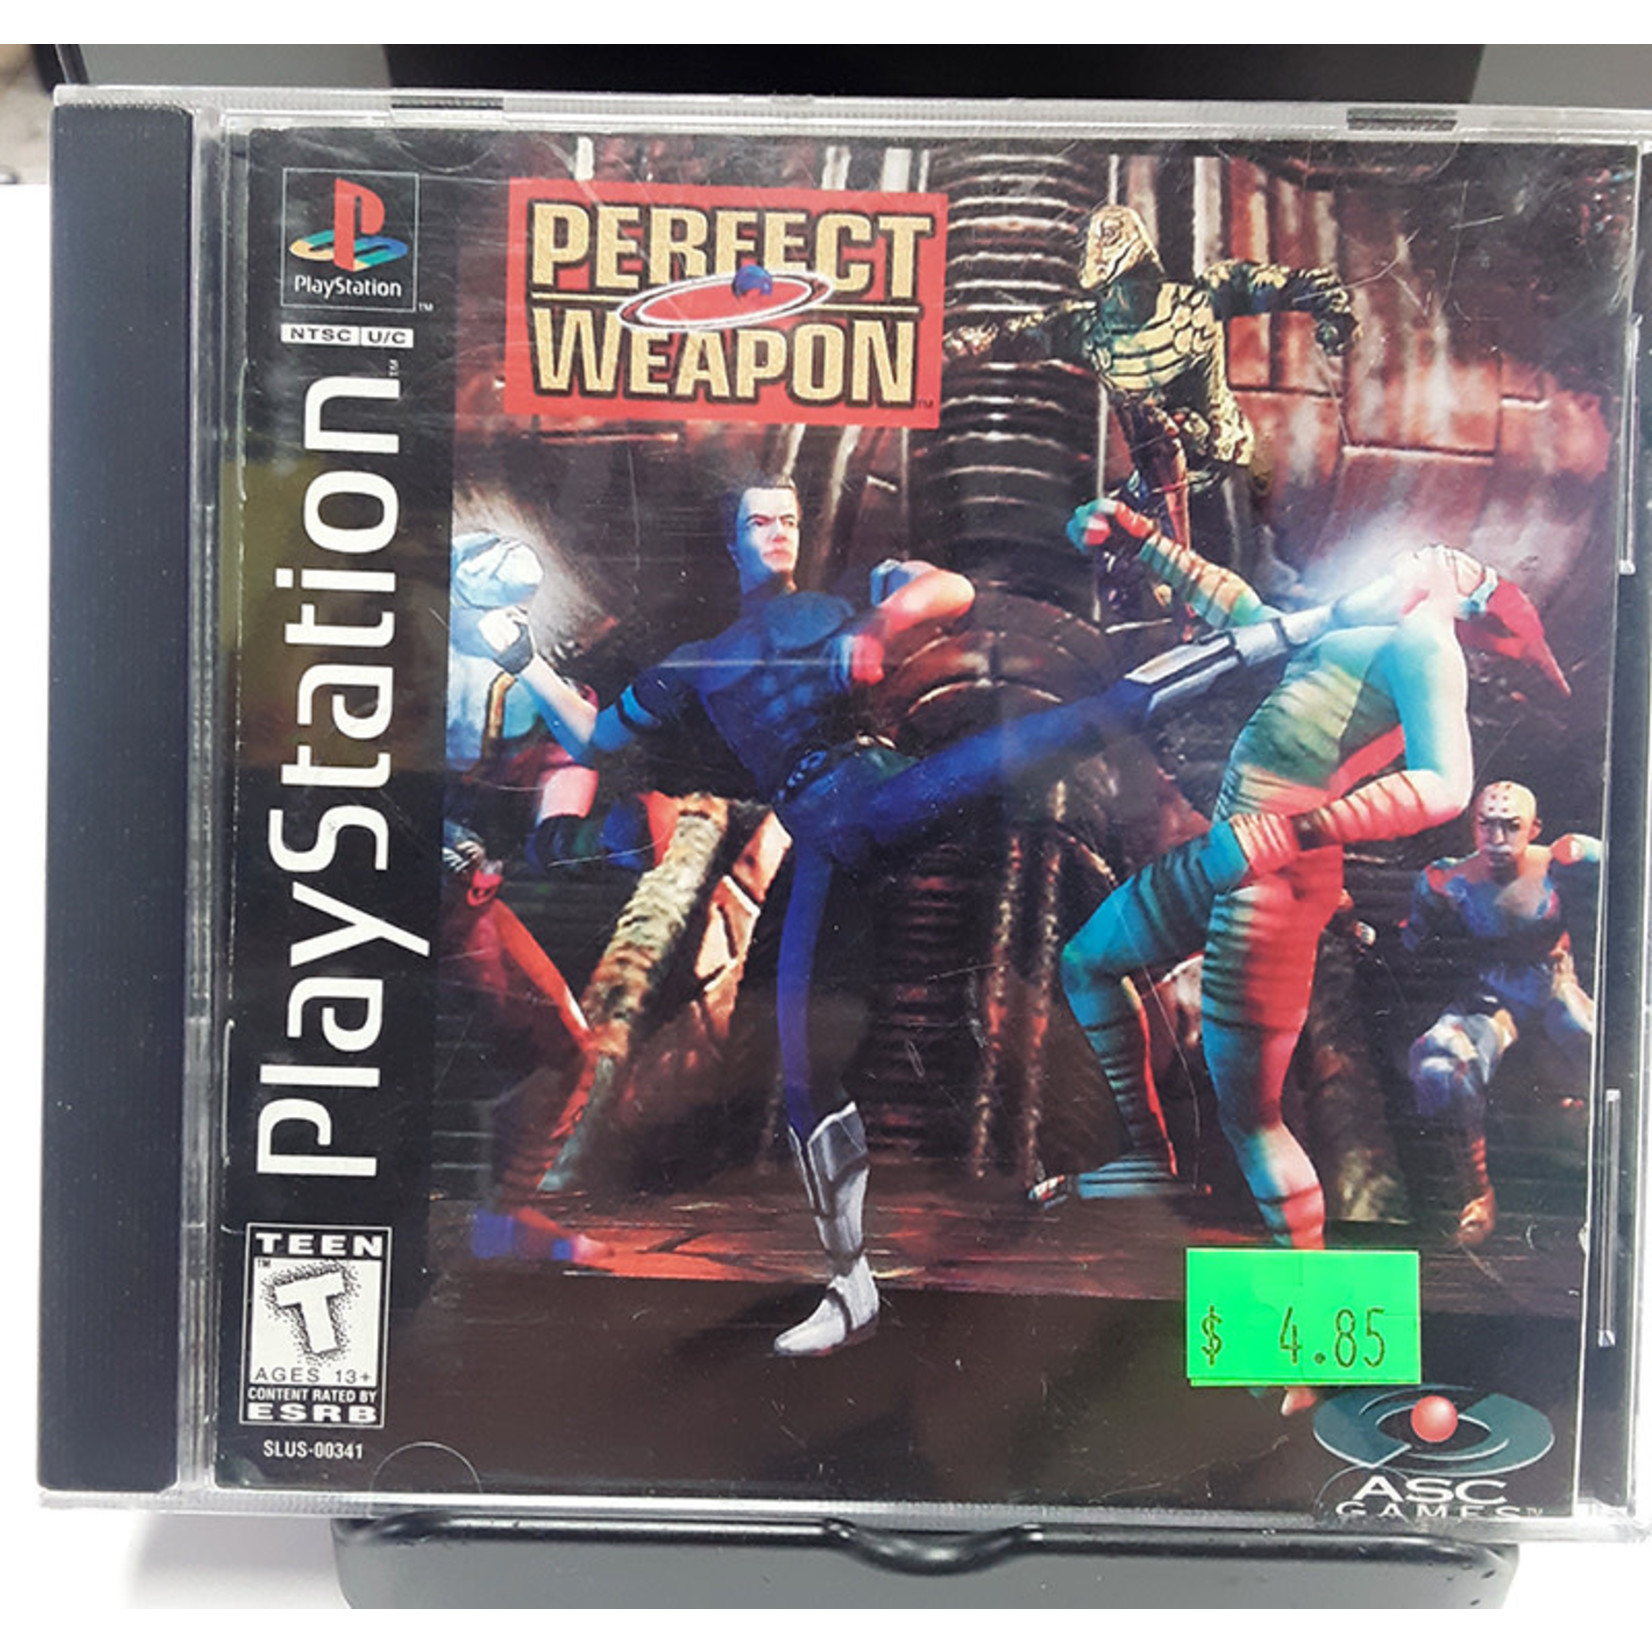 ps1u-perfect weapon